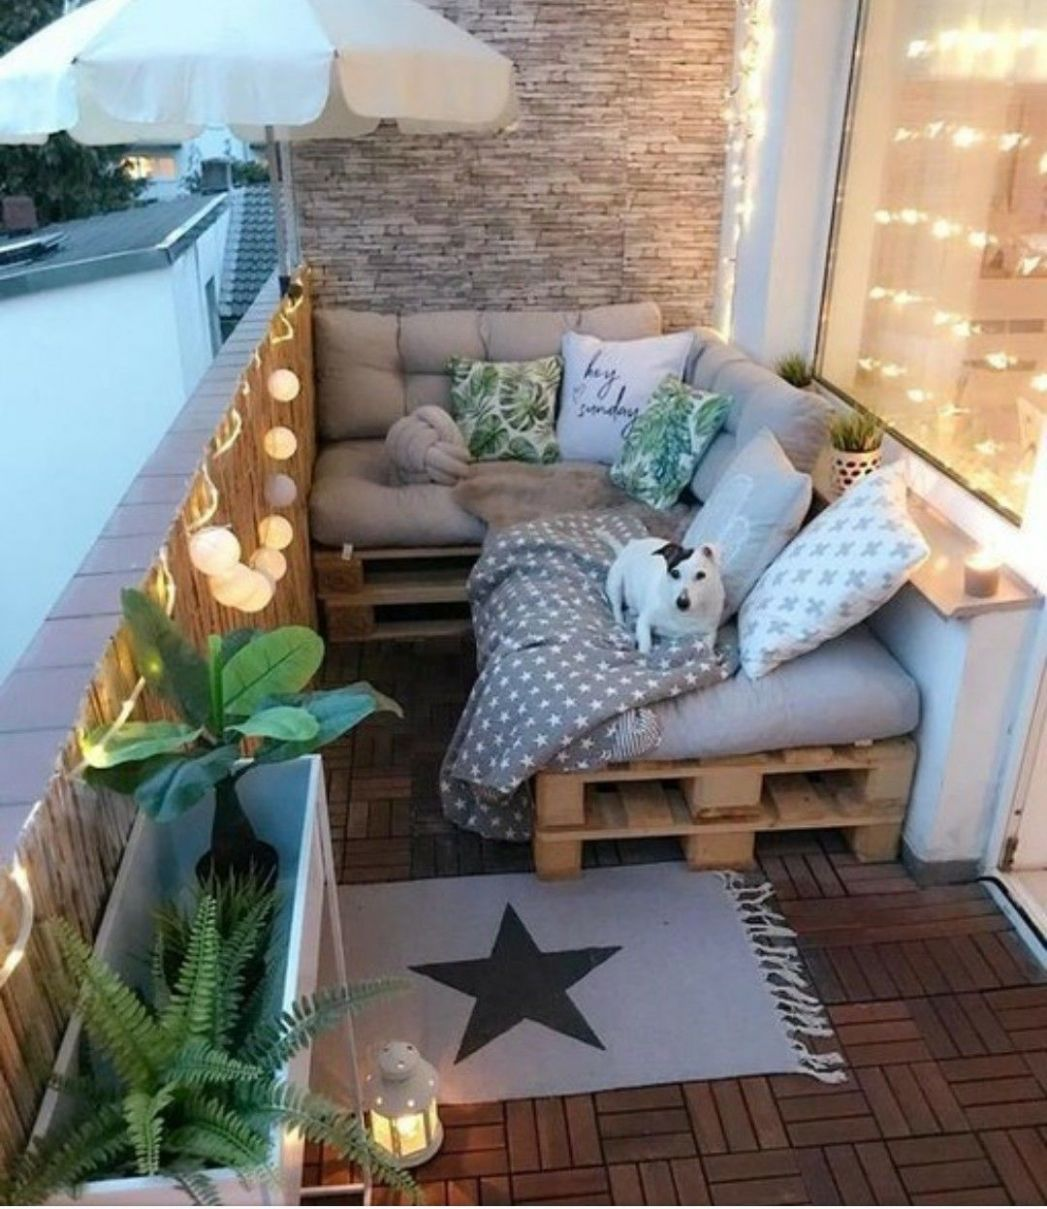 Small Balcony Ideas (With images) | Small balcony decor, First ..